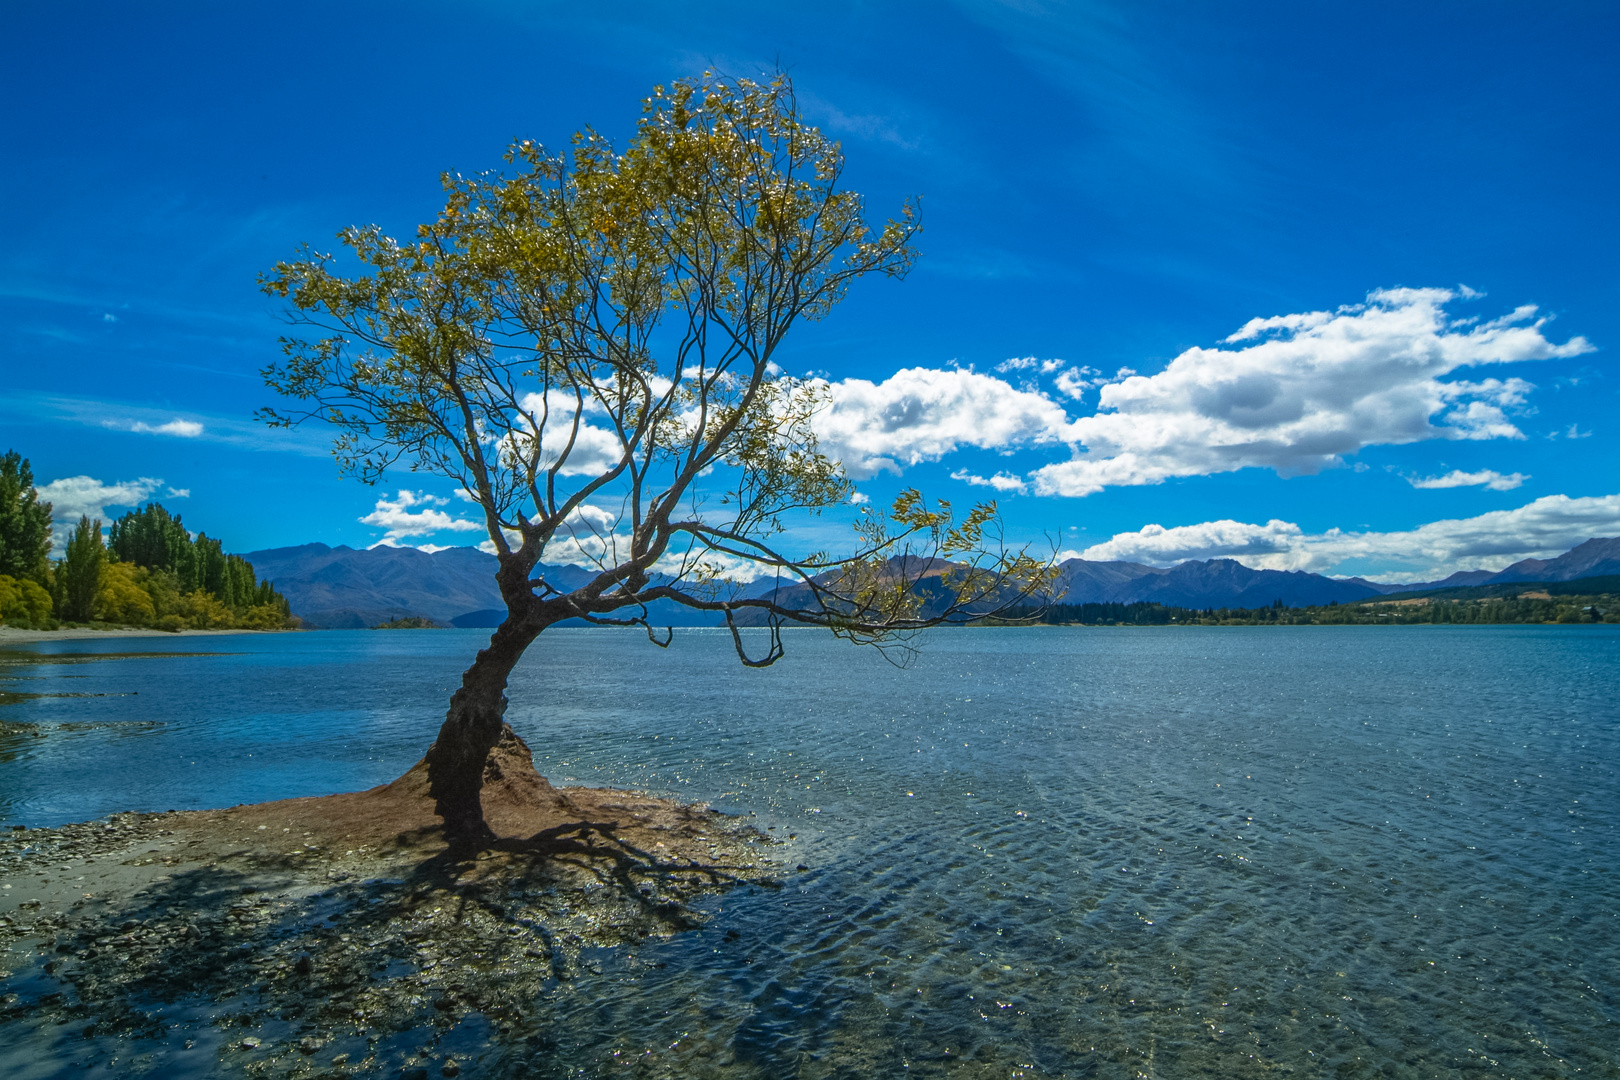 Moschee Neuseeland Video Pinterest: Neuseeland 2006: Südinsel, Einsamer Baum Am Lake Wanaka